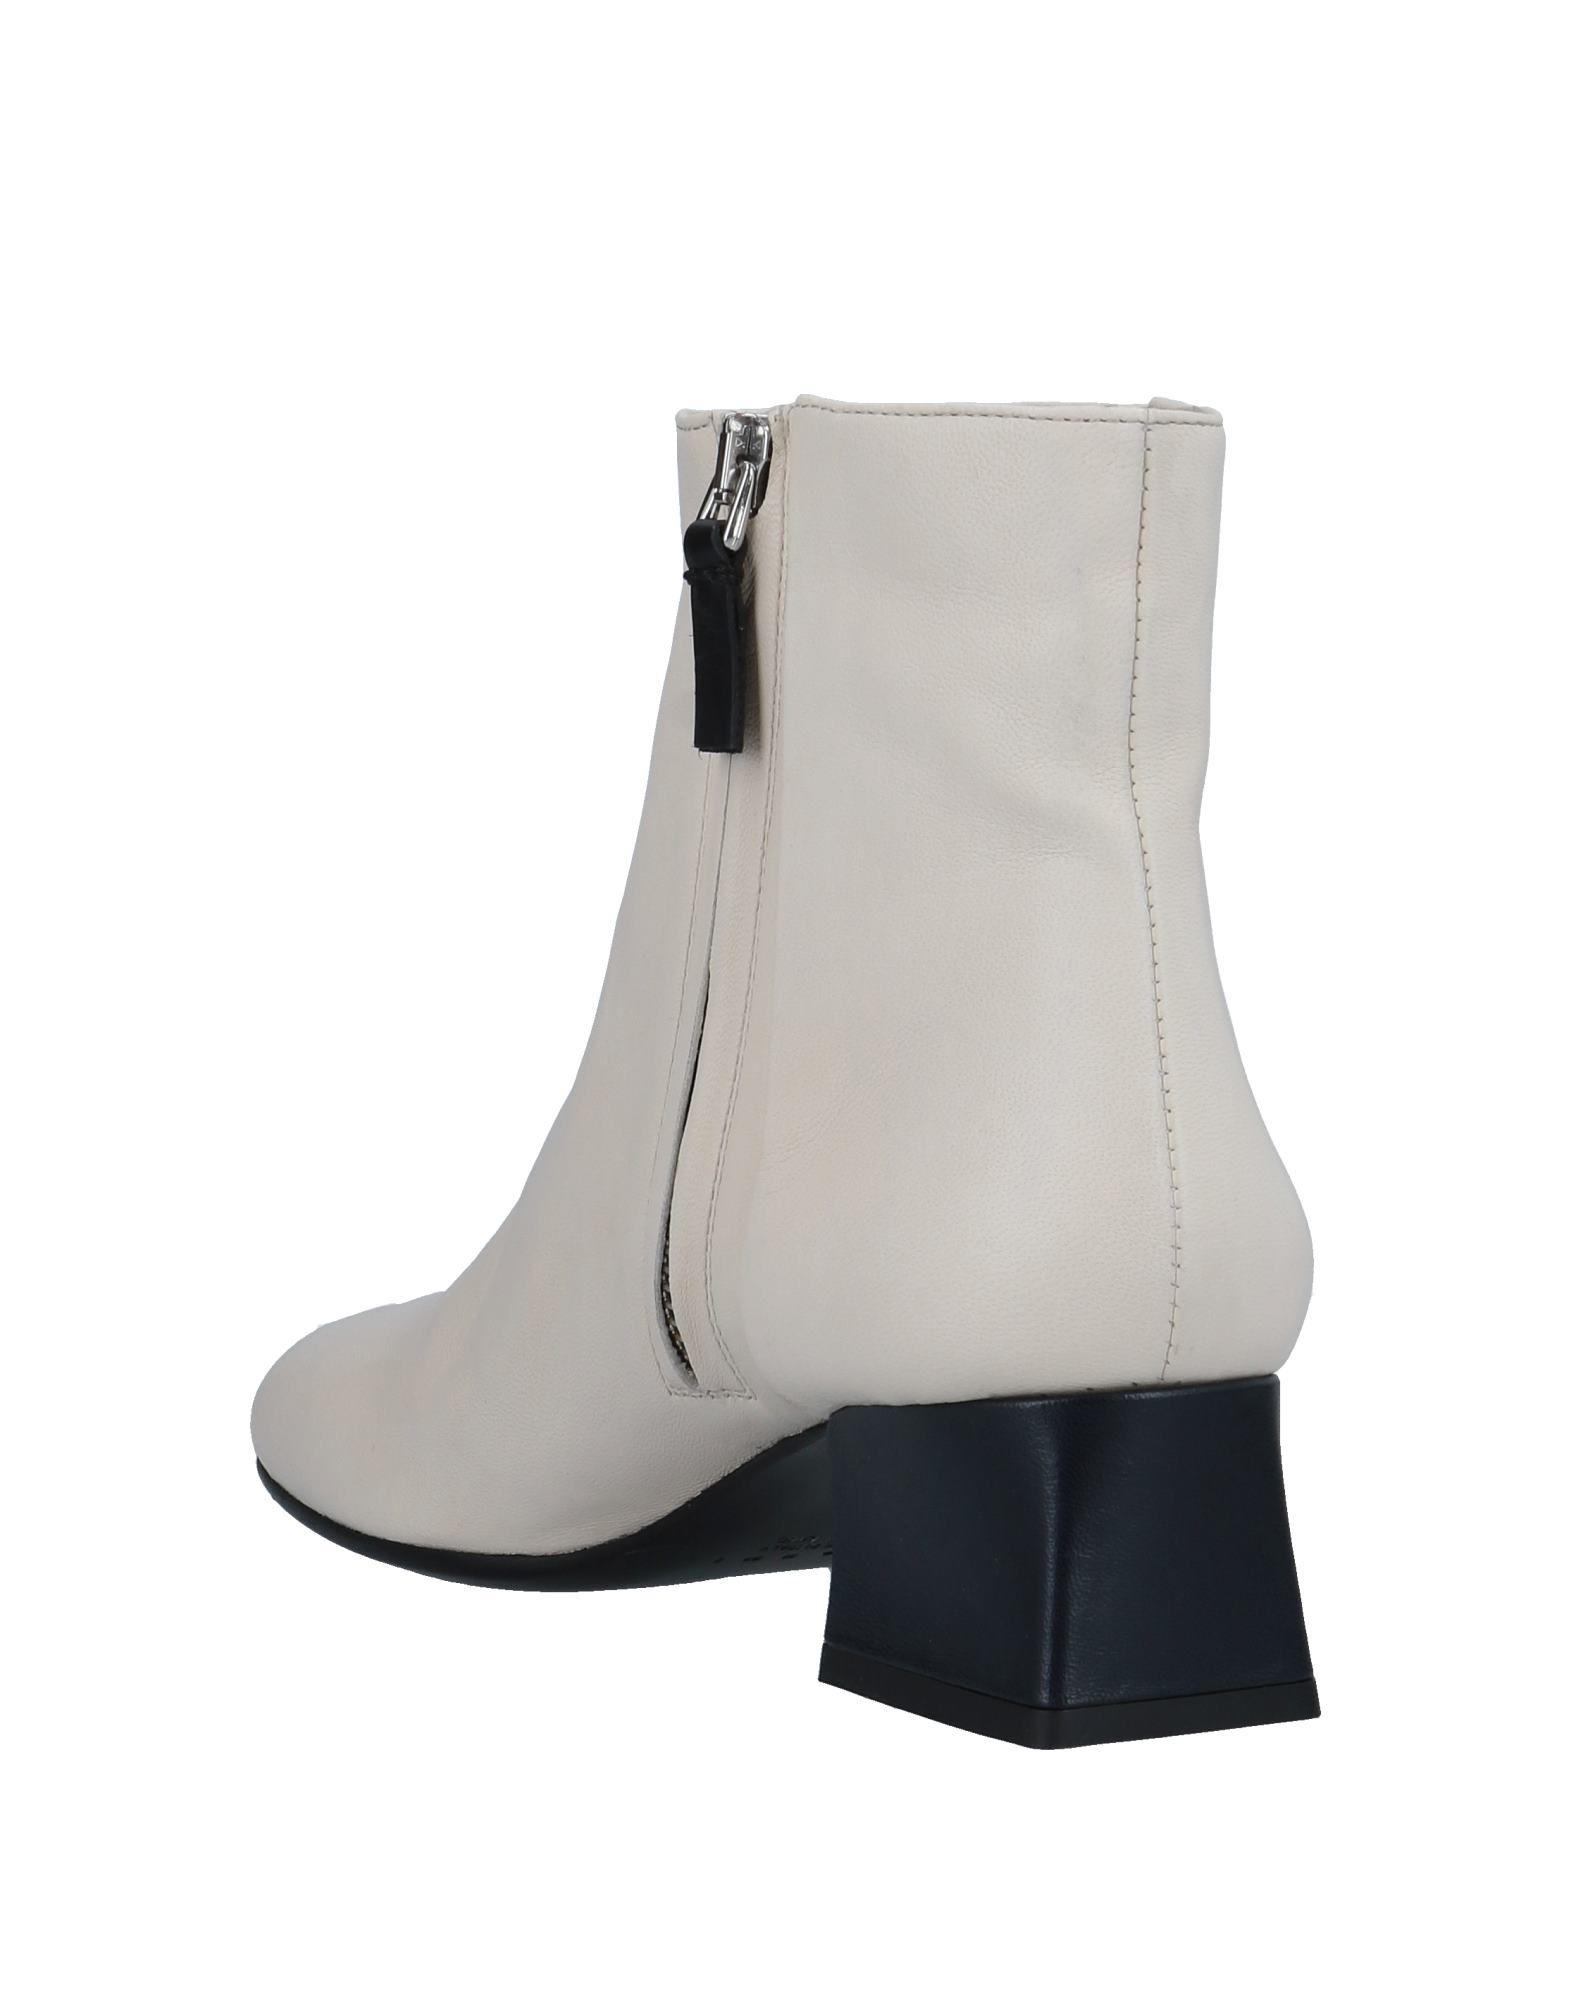 Marni Leather Ankle Boots in Ivory (White)